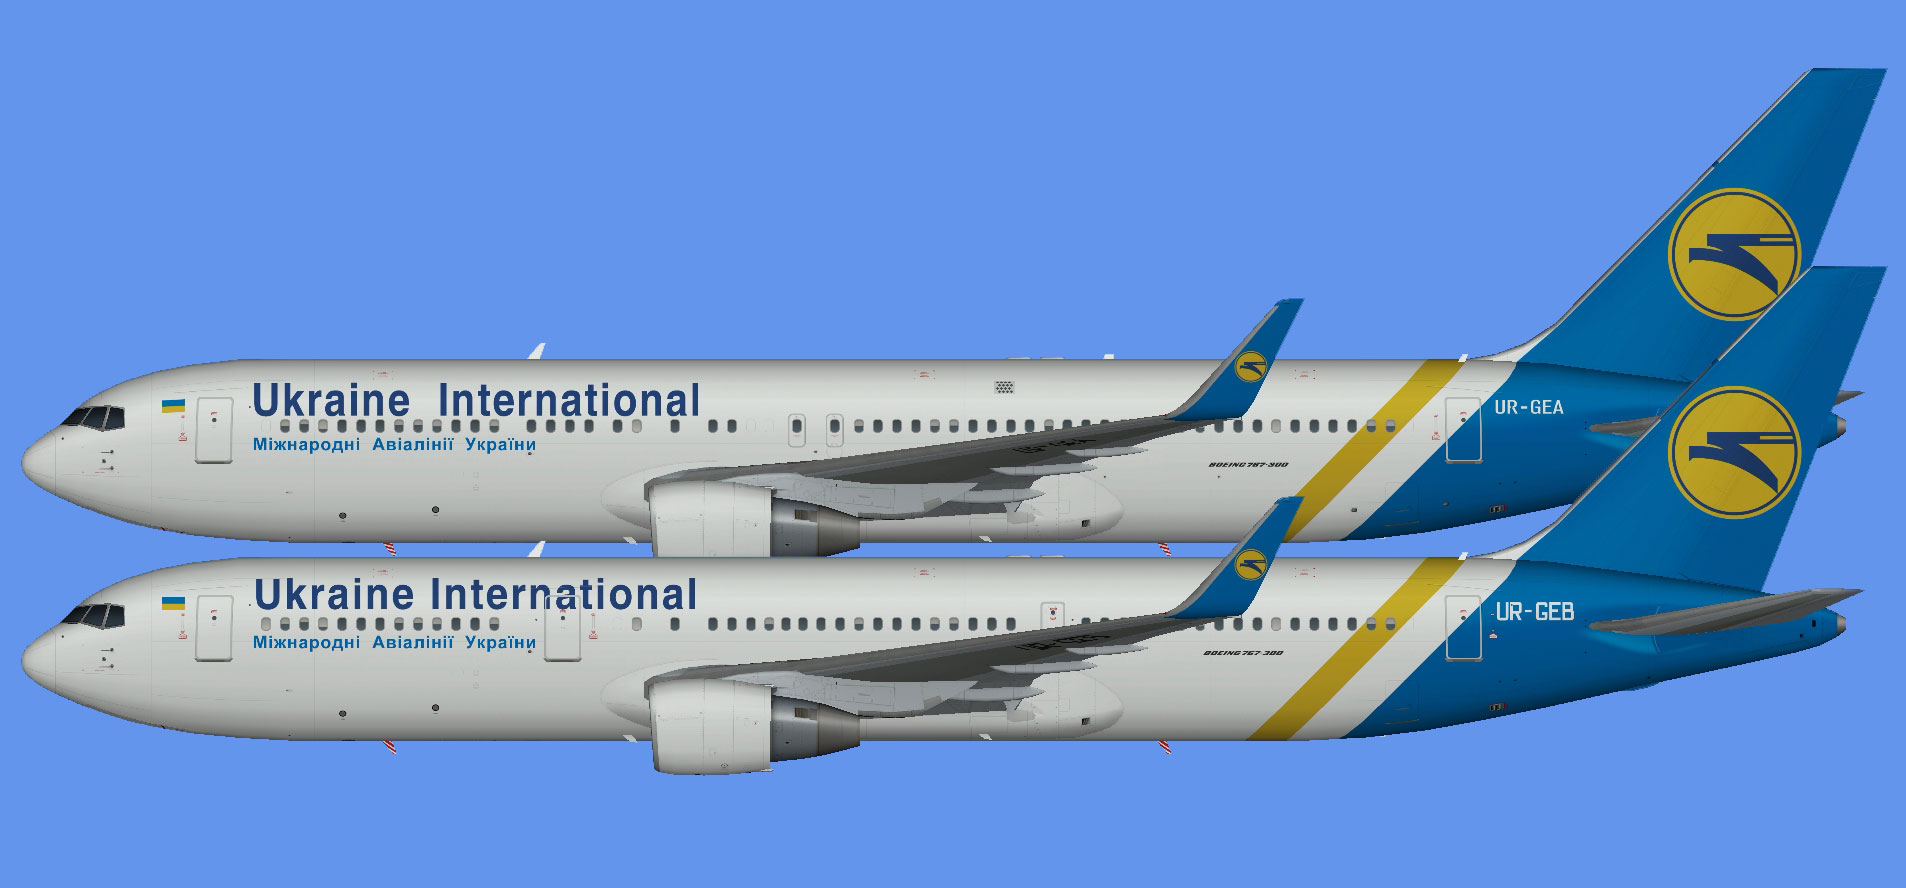 Ukraine International 767-300